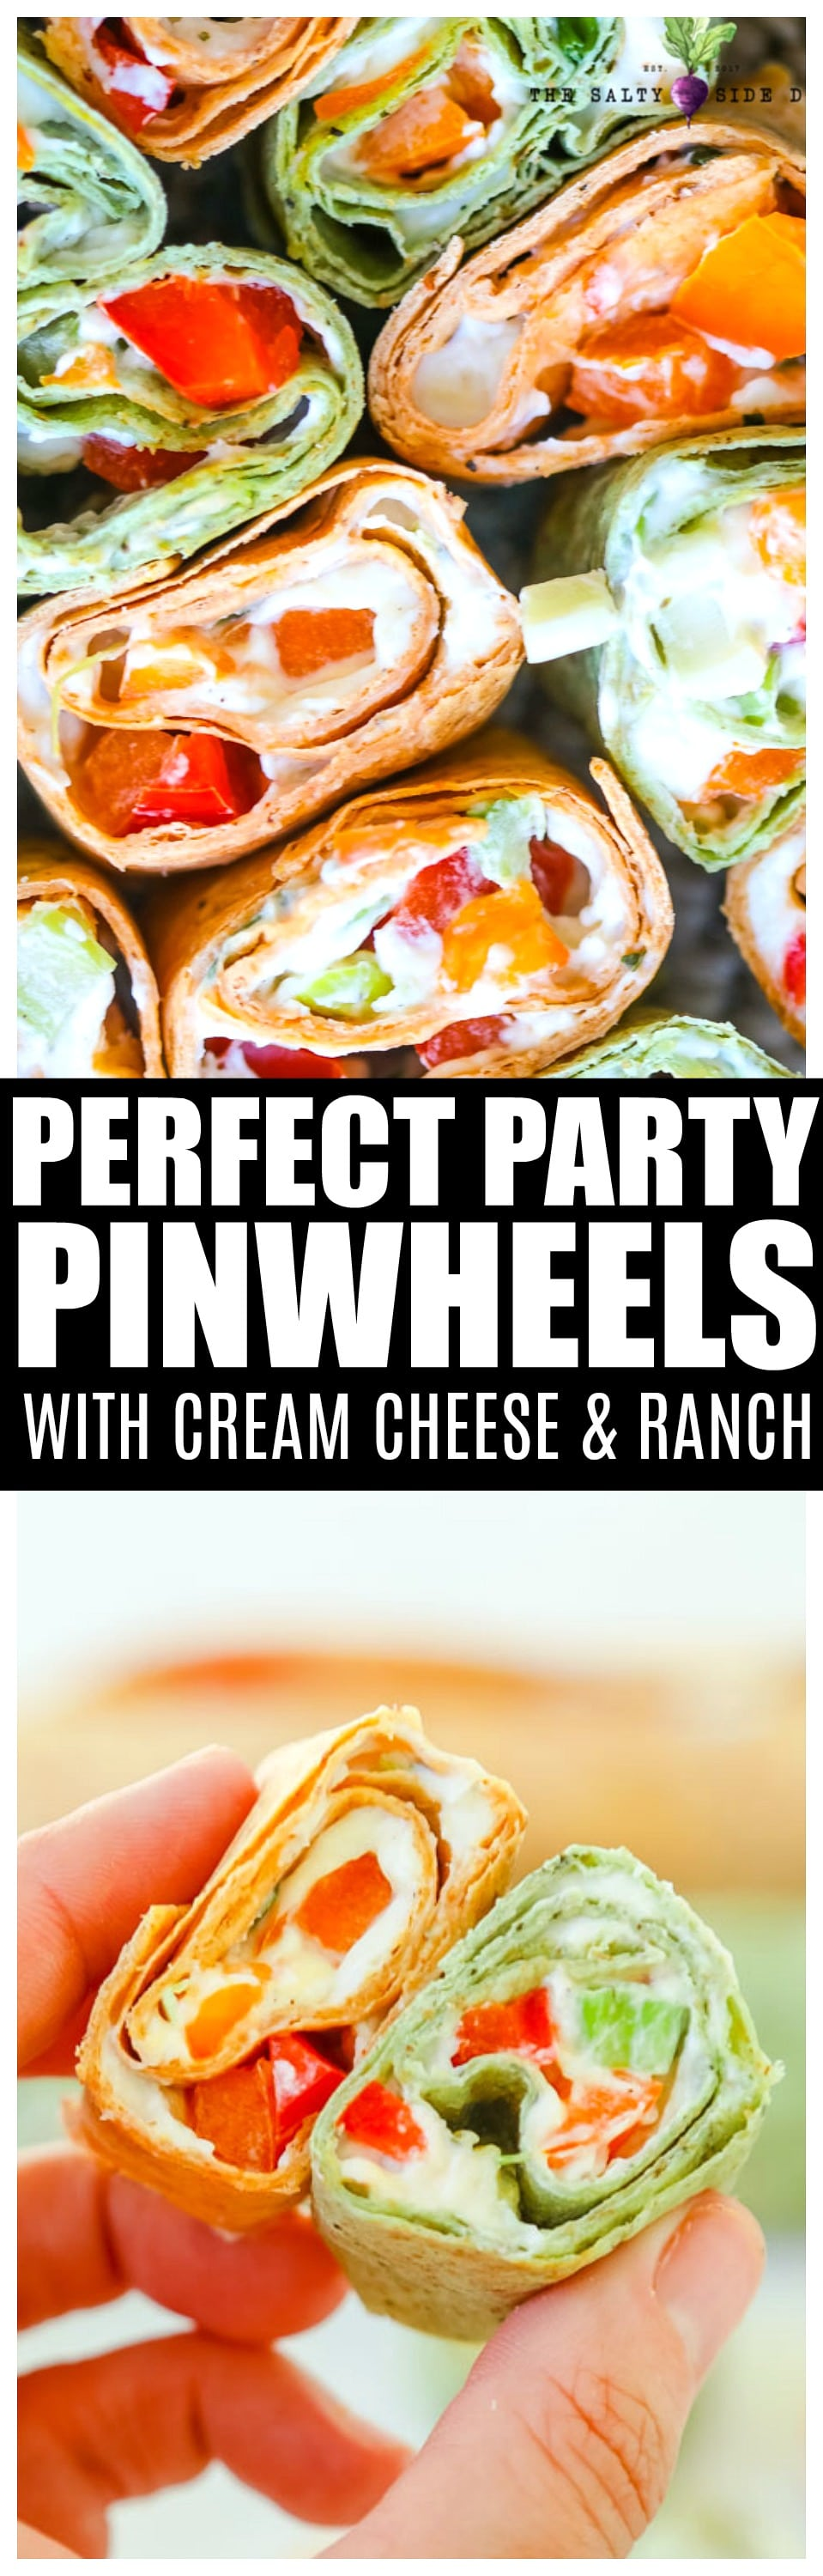 Pinwheel Sandwiches with Cream Cheese and Diced Veggies | Perfect Pinwheel Appetizer Recipe #appetizers #holiday #creamcheese #holidays